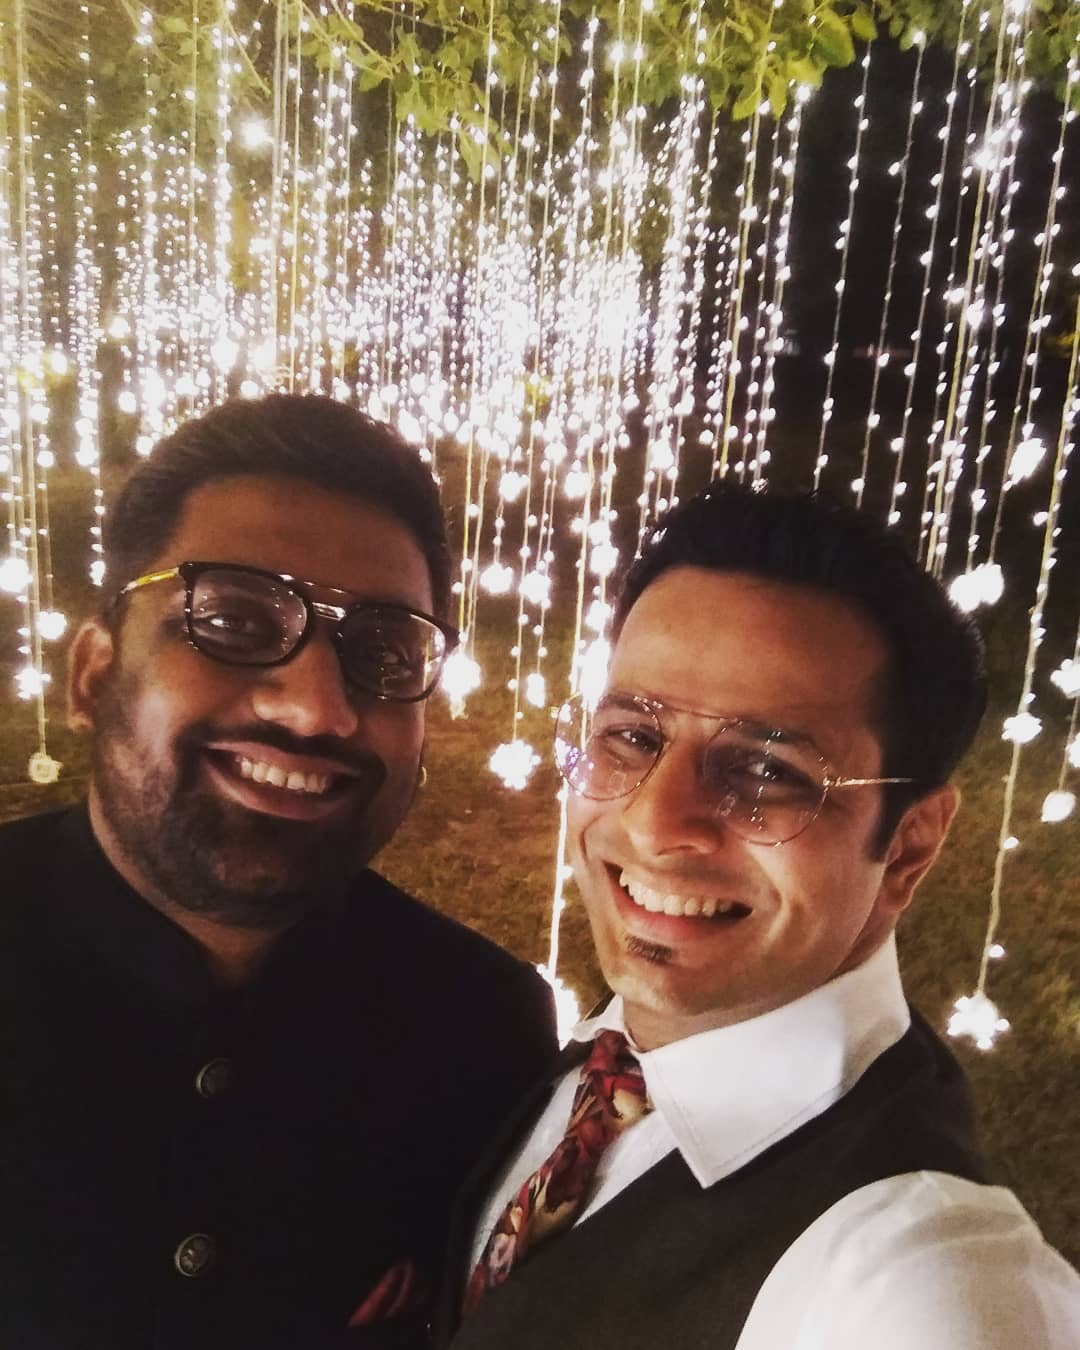 Janmadivas Ni Hardik Shubhkamnao, MANAN DESAI 🎂 HAPPY BIRTHDAY to the person with whom I've performed, entertained, struggled, reveled, smiled, cried, laughed, fought, argued, agreed, ogled, appreciated, loved, hated, chided, criticised, hurt, healed, applauded, cheered, screamed, mimicked, admired, gifted, sang, danced, swam, flew, written, directed, acted, created and dreamt... together. Let's travel, again, to those times and back, for eons to come. 🤗❣️ #manandesai #happy #birthday #dearfriend#ojasrawal #thecomedyfactory #gujju #gujarat #ahmedabad #vadodara #surat #baroda #mumbai #standup #standupcomedy #jatitehje #ashudhgujarati #funny #buddy #lovethisguy #comiclife #comedians #standupcomedians #happybirthday #pal #memories #thisguy #love #goodtimes #always @thecomedyfactoryindia @instafunny_manan